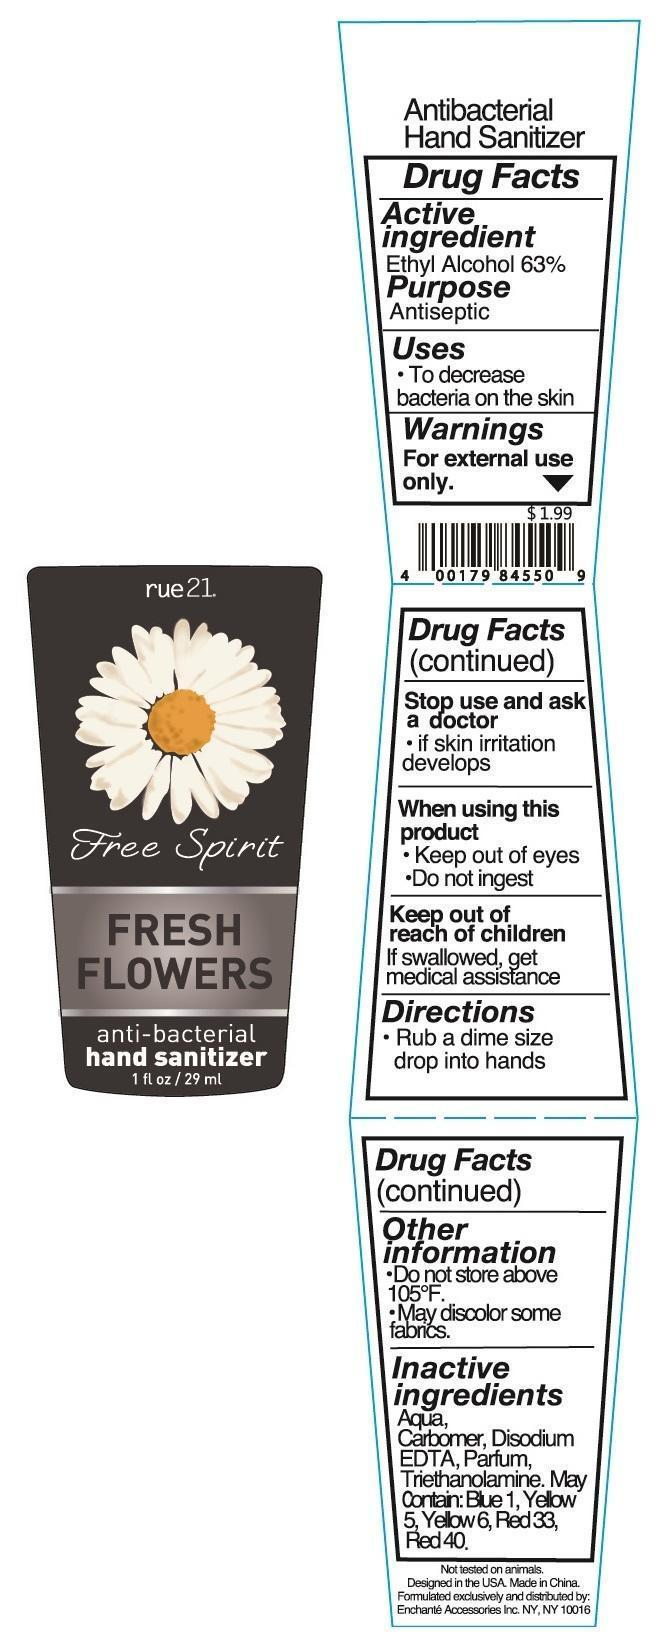 Rue 21 Free Spirit Fresh Flowers Anti Bacterial Hand Sanitizer (Alcohol) Liquid [Enchante Accessories Inc. ]